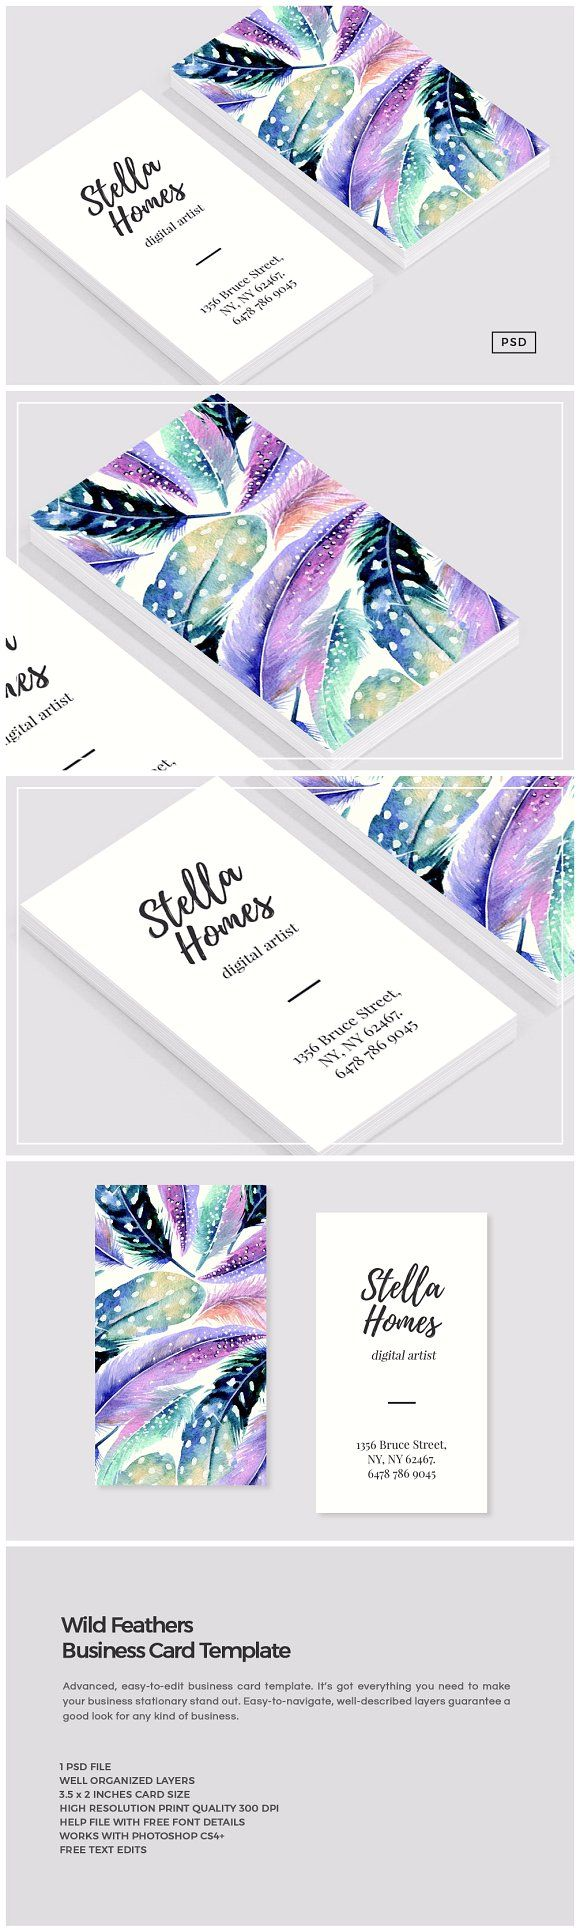 Wild Feathers Business Card Template @creativework247